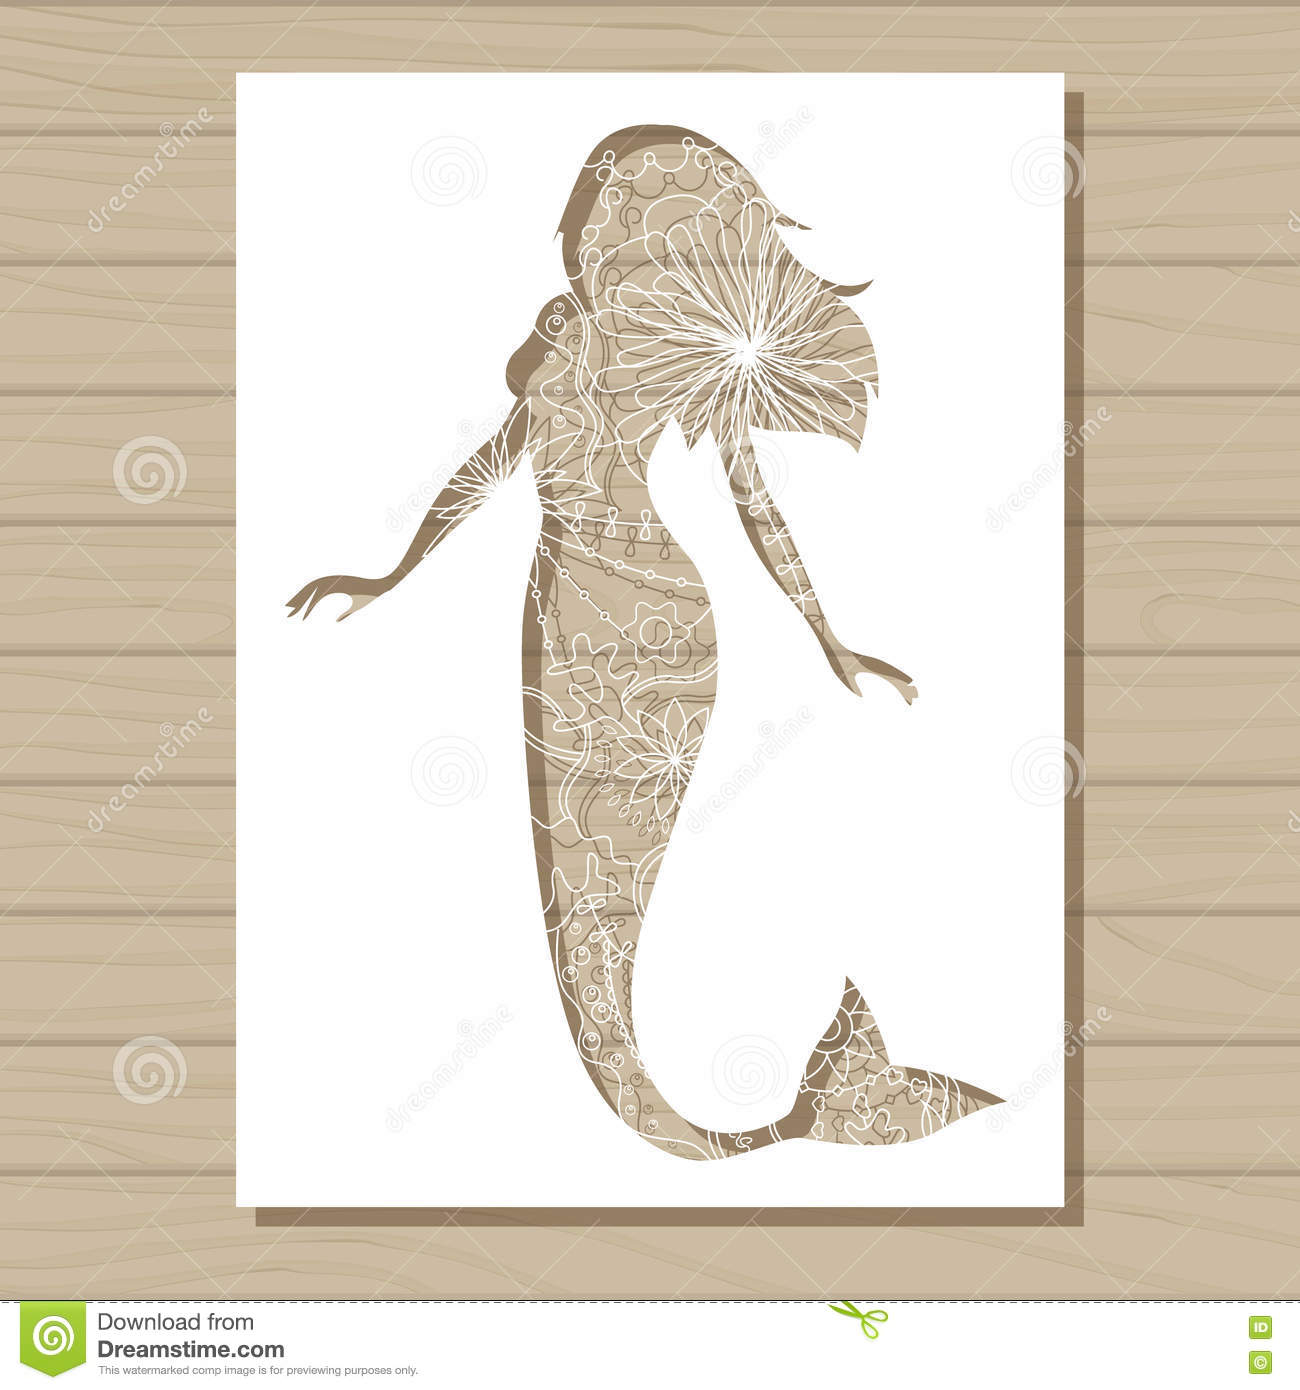 stencil template of mermaid on wooden background stock illustration